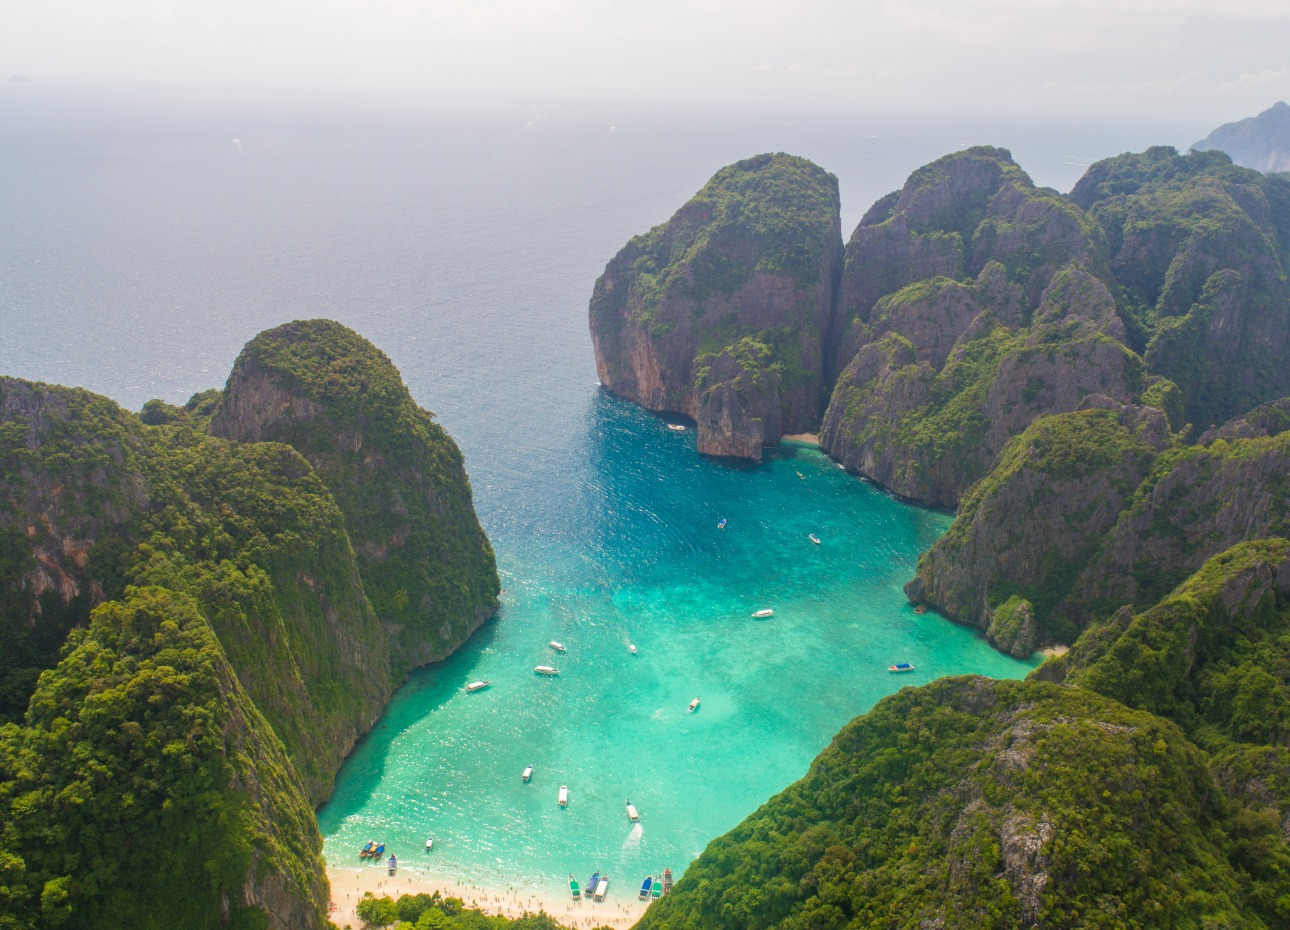 Aerial view of turquoise waters, Thailand